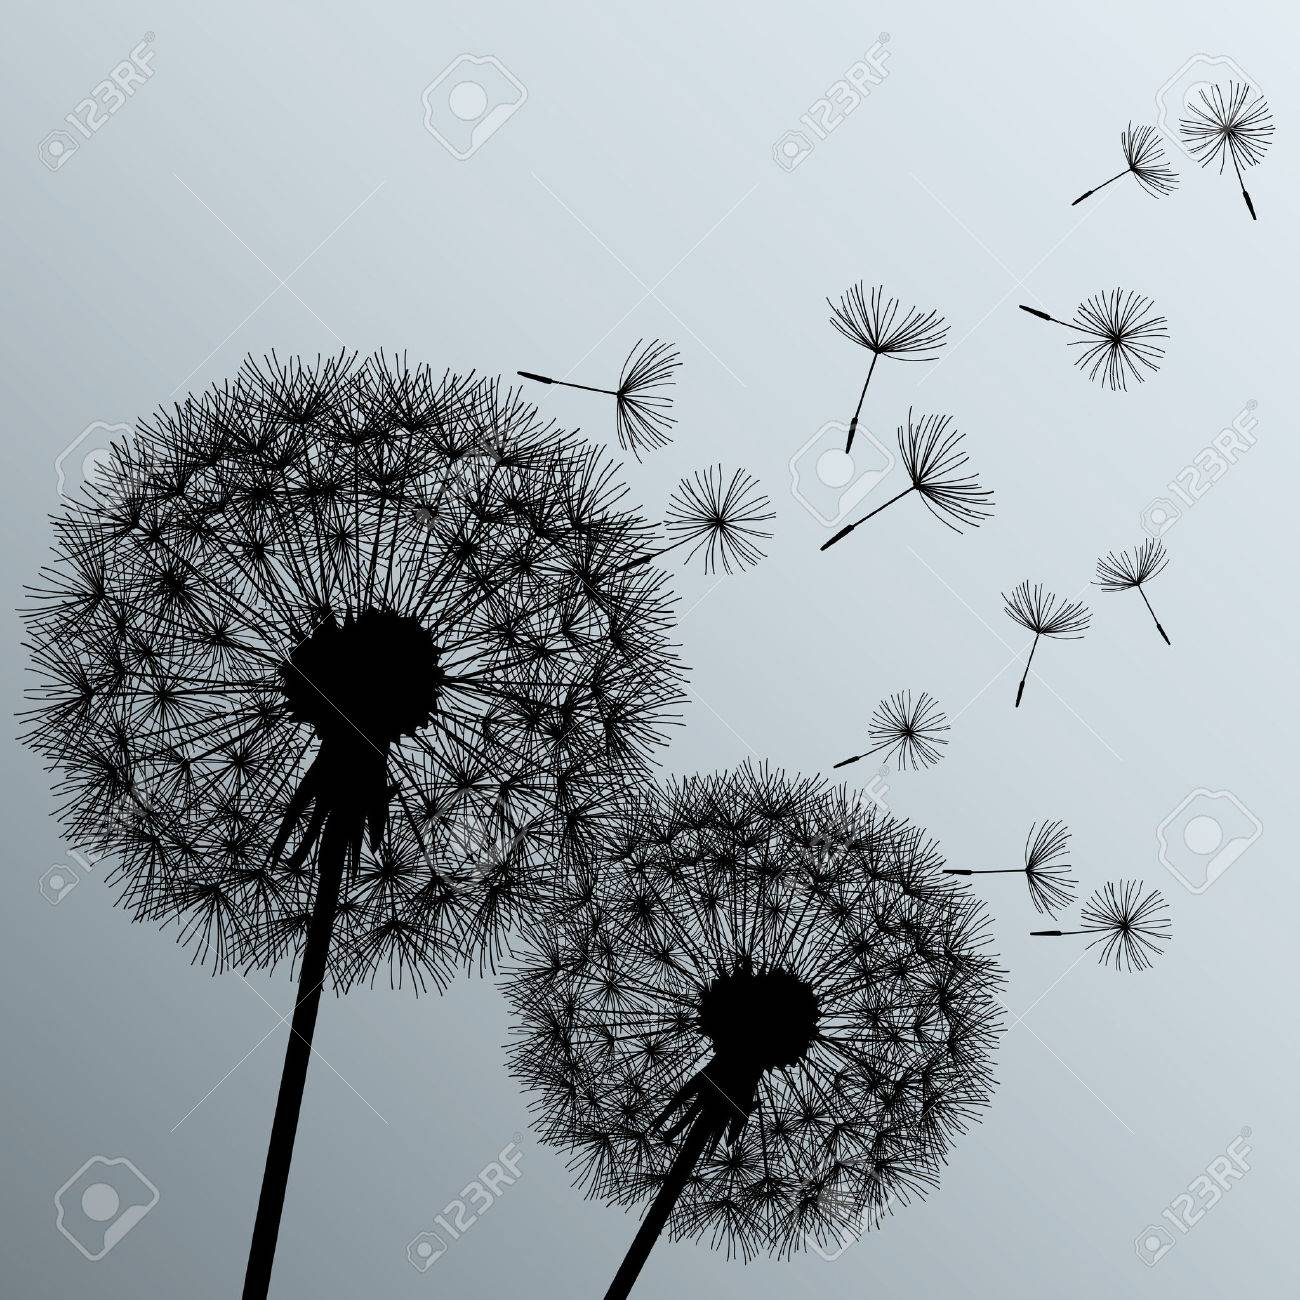 Stylish Background With Two Black Flowers Dandelions On Grey Beautiful Trendy Romantic Wallpaper Vector Illustration